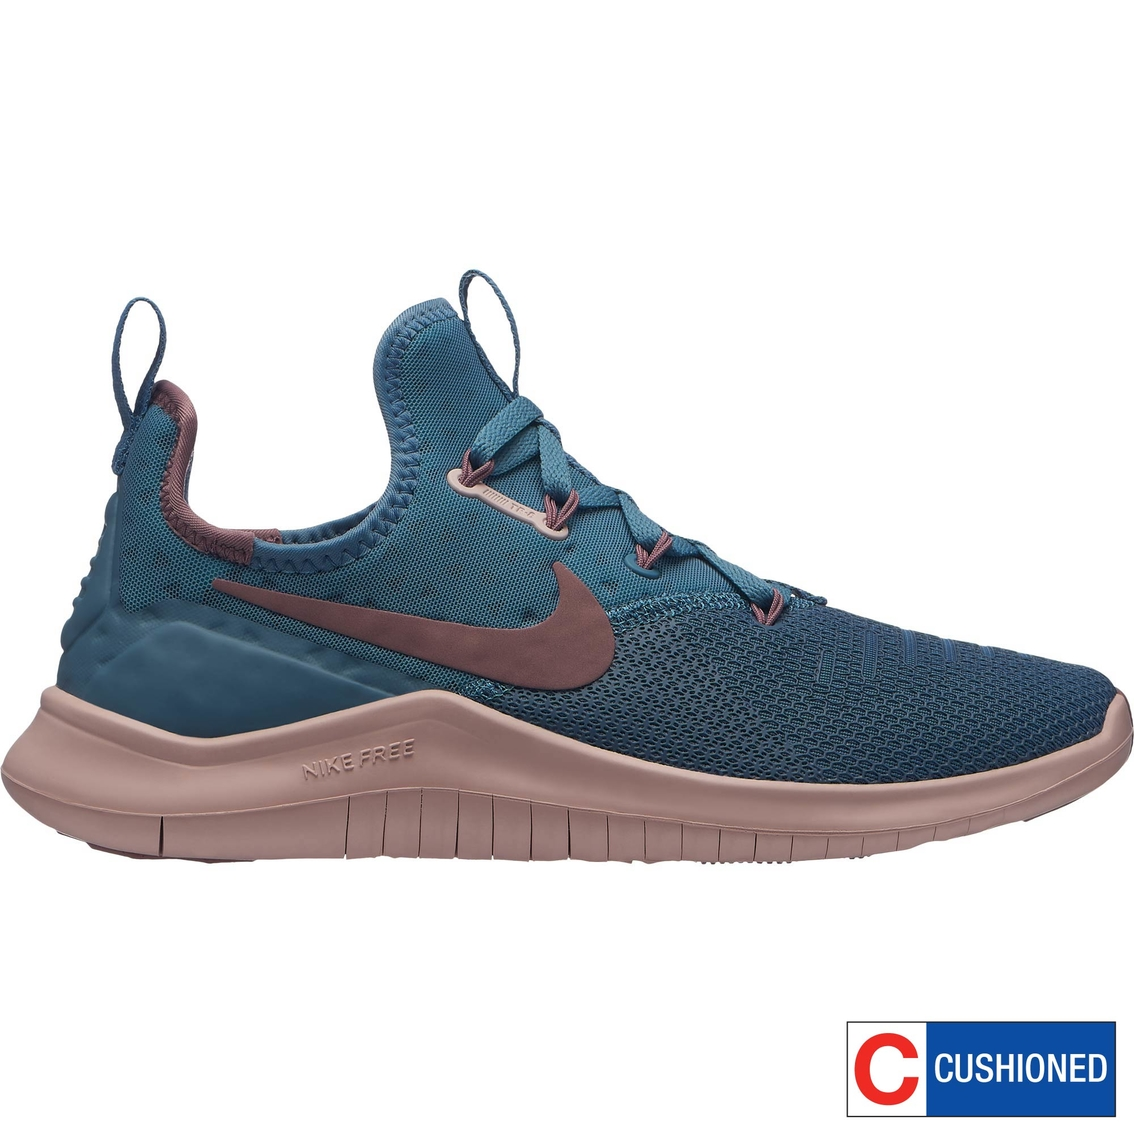 187795a567104 Nike Women s Free Tr8 Training Shoes